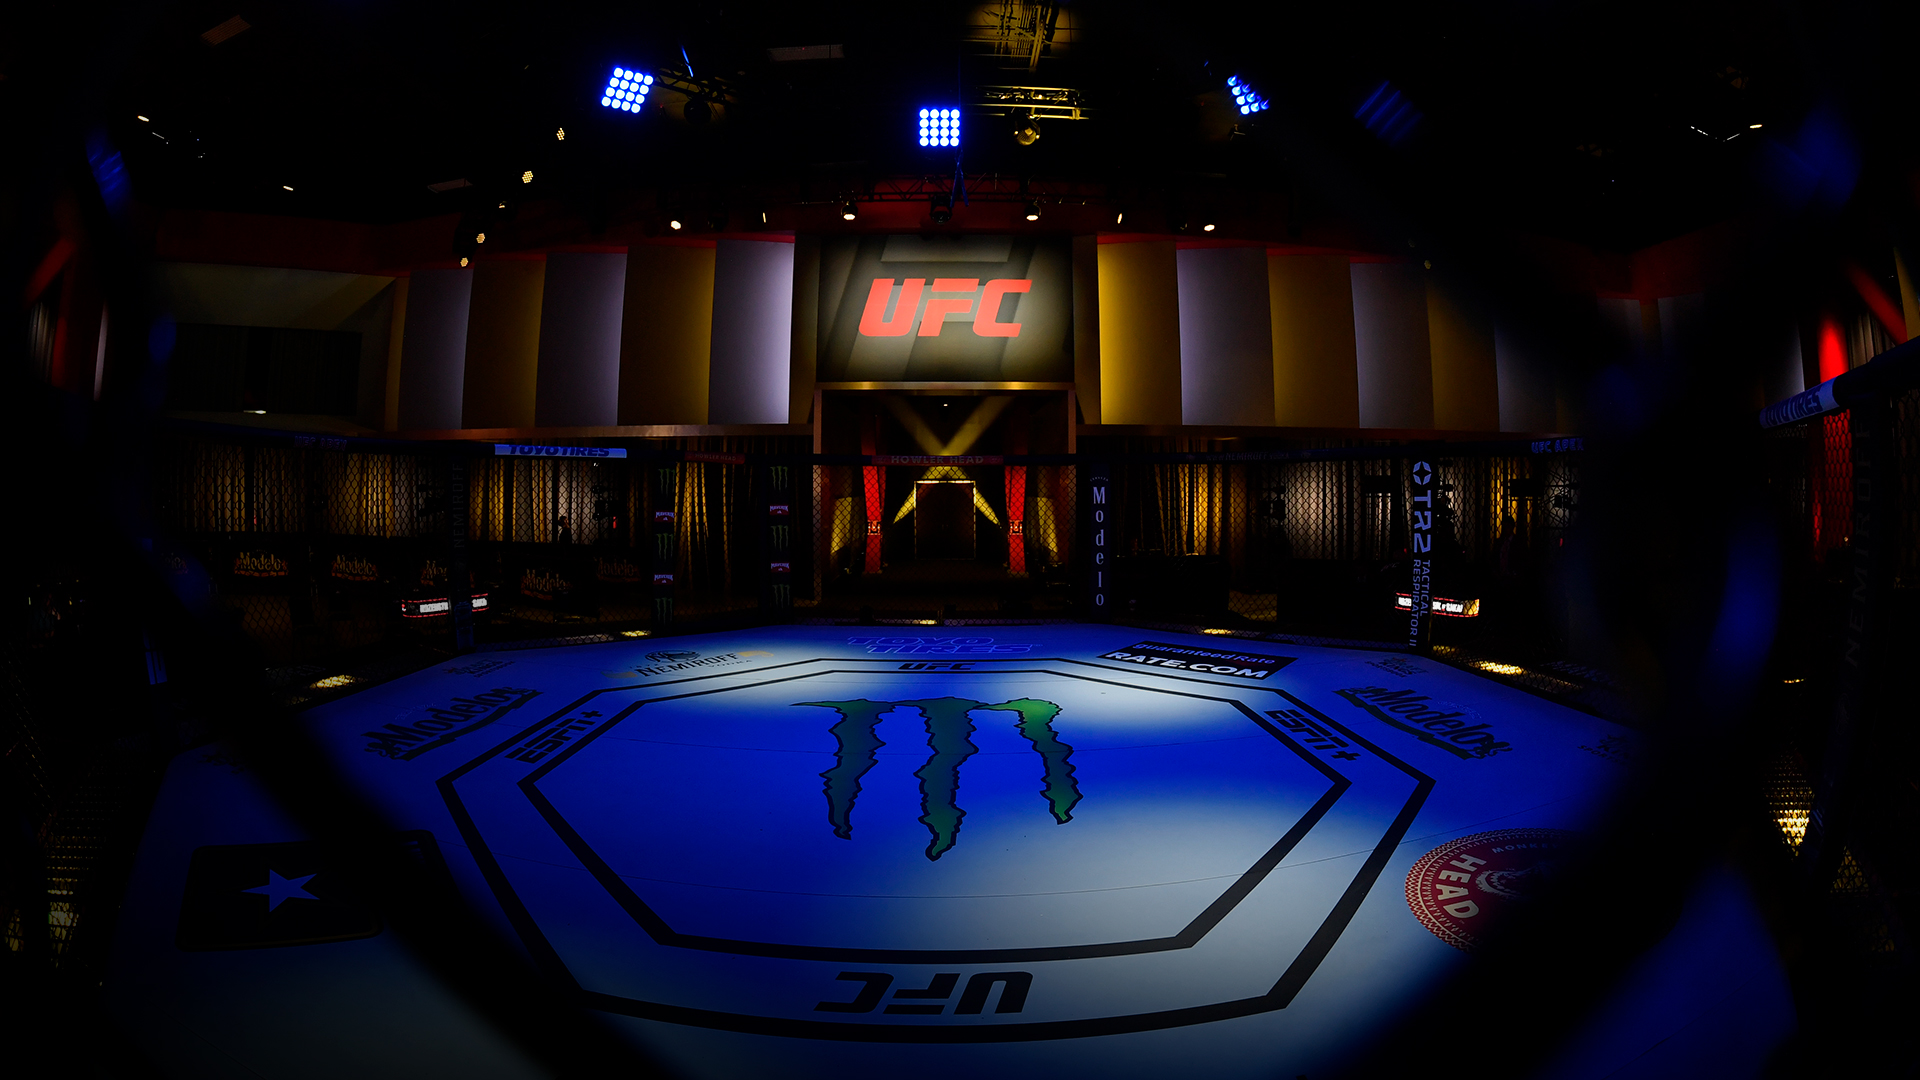 A general view of the Octagon prior to the UFC Fight Night event at UFC APEX on June 05, 2021 in Las Vegas, Nevada. (Photo by Jeff Bottari/Zuffa LLC)A general view of the Octagon prior to the UFC Fight Night event at UFC APEX on June 05, 2021 in Las Vegas, Nevada. (Photo by Jeff Bottari/Zuffa LLC)